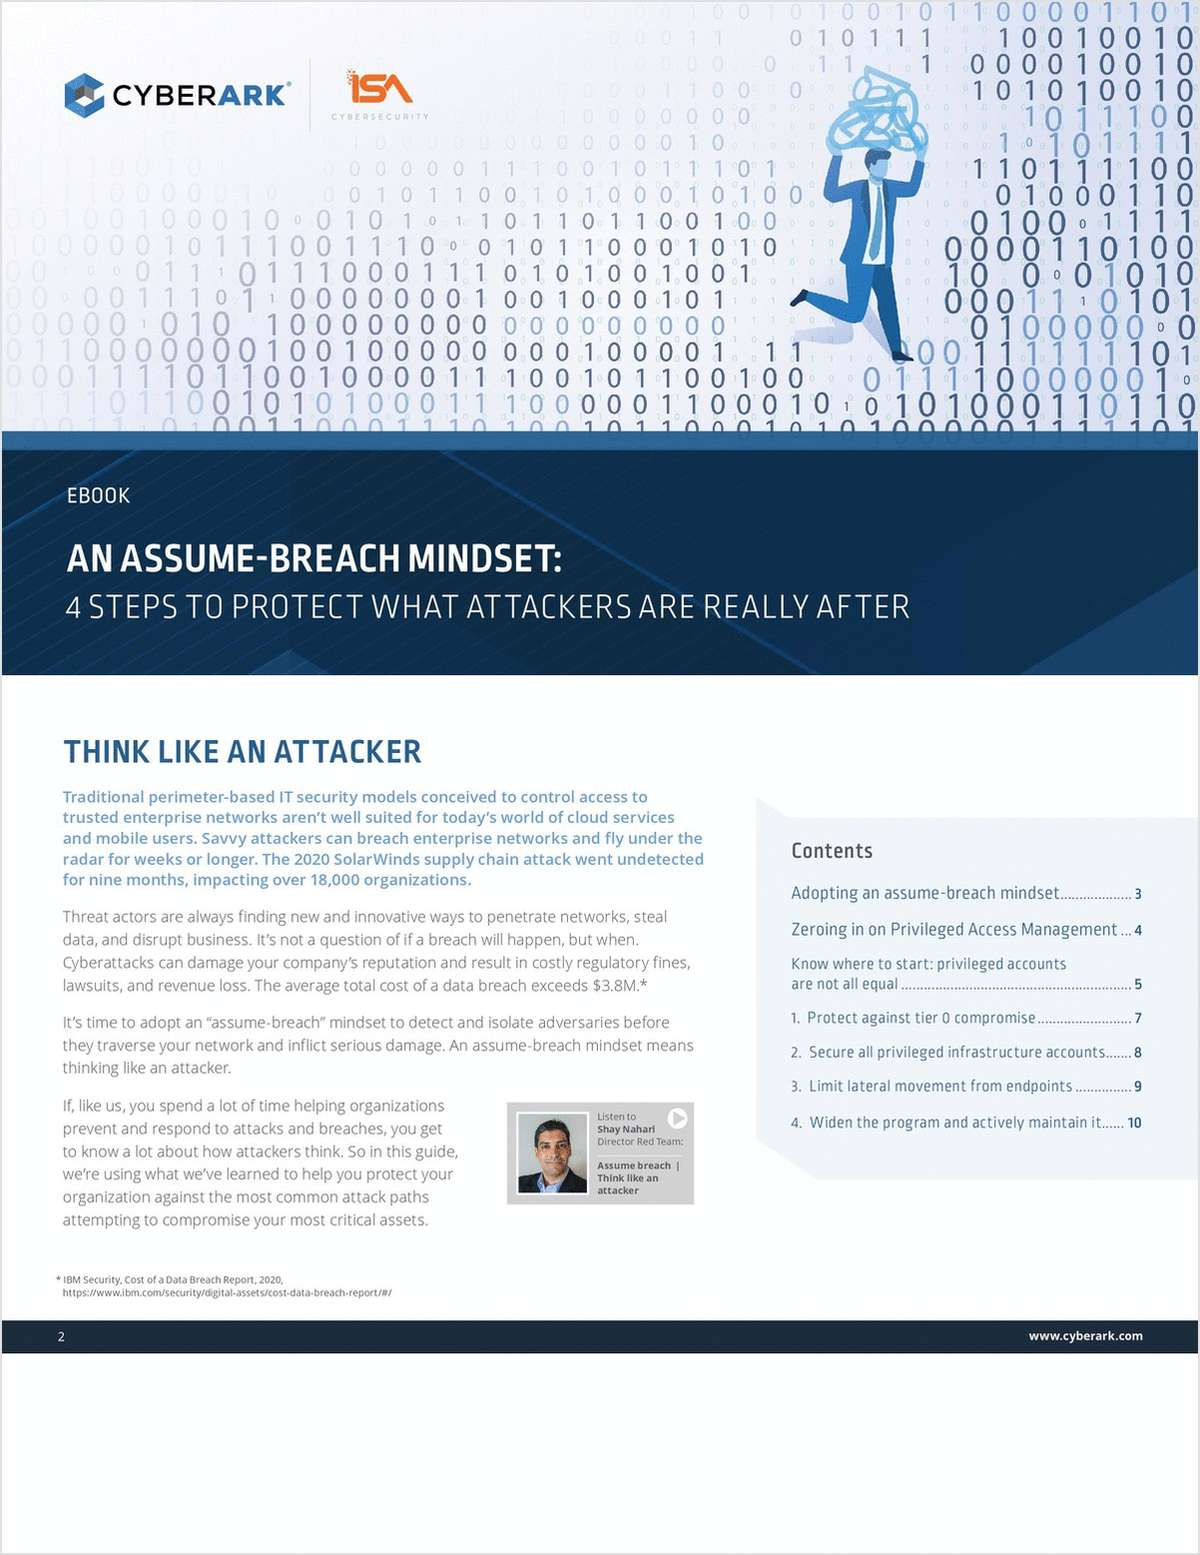 An Assume-Breach Mindset: 4 Steps To Protect What Attackers Are Really After